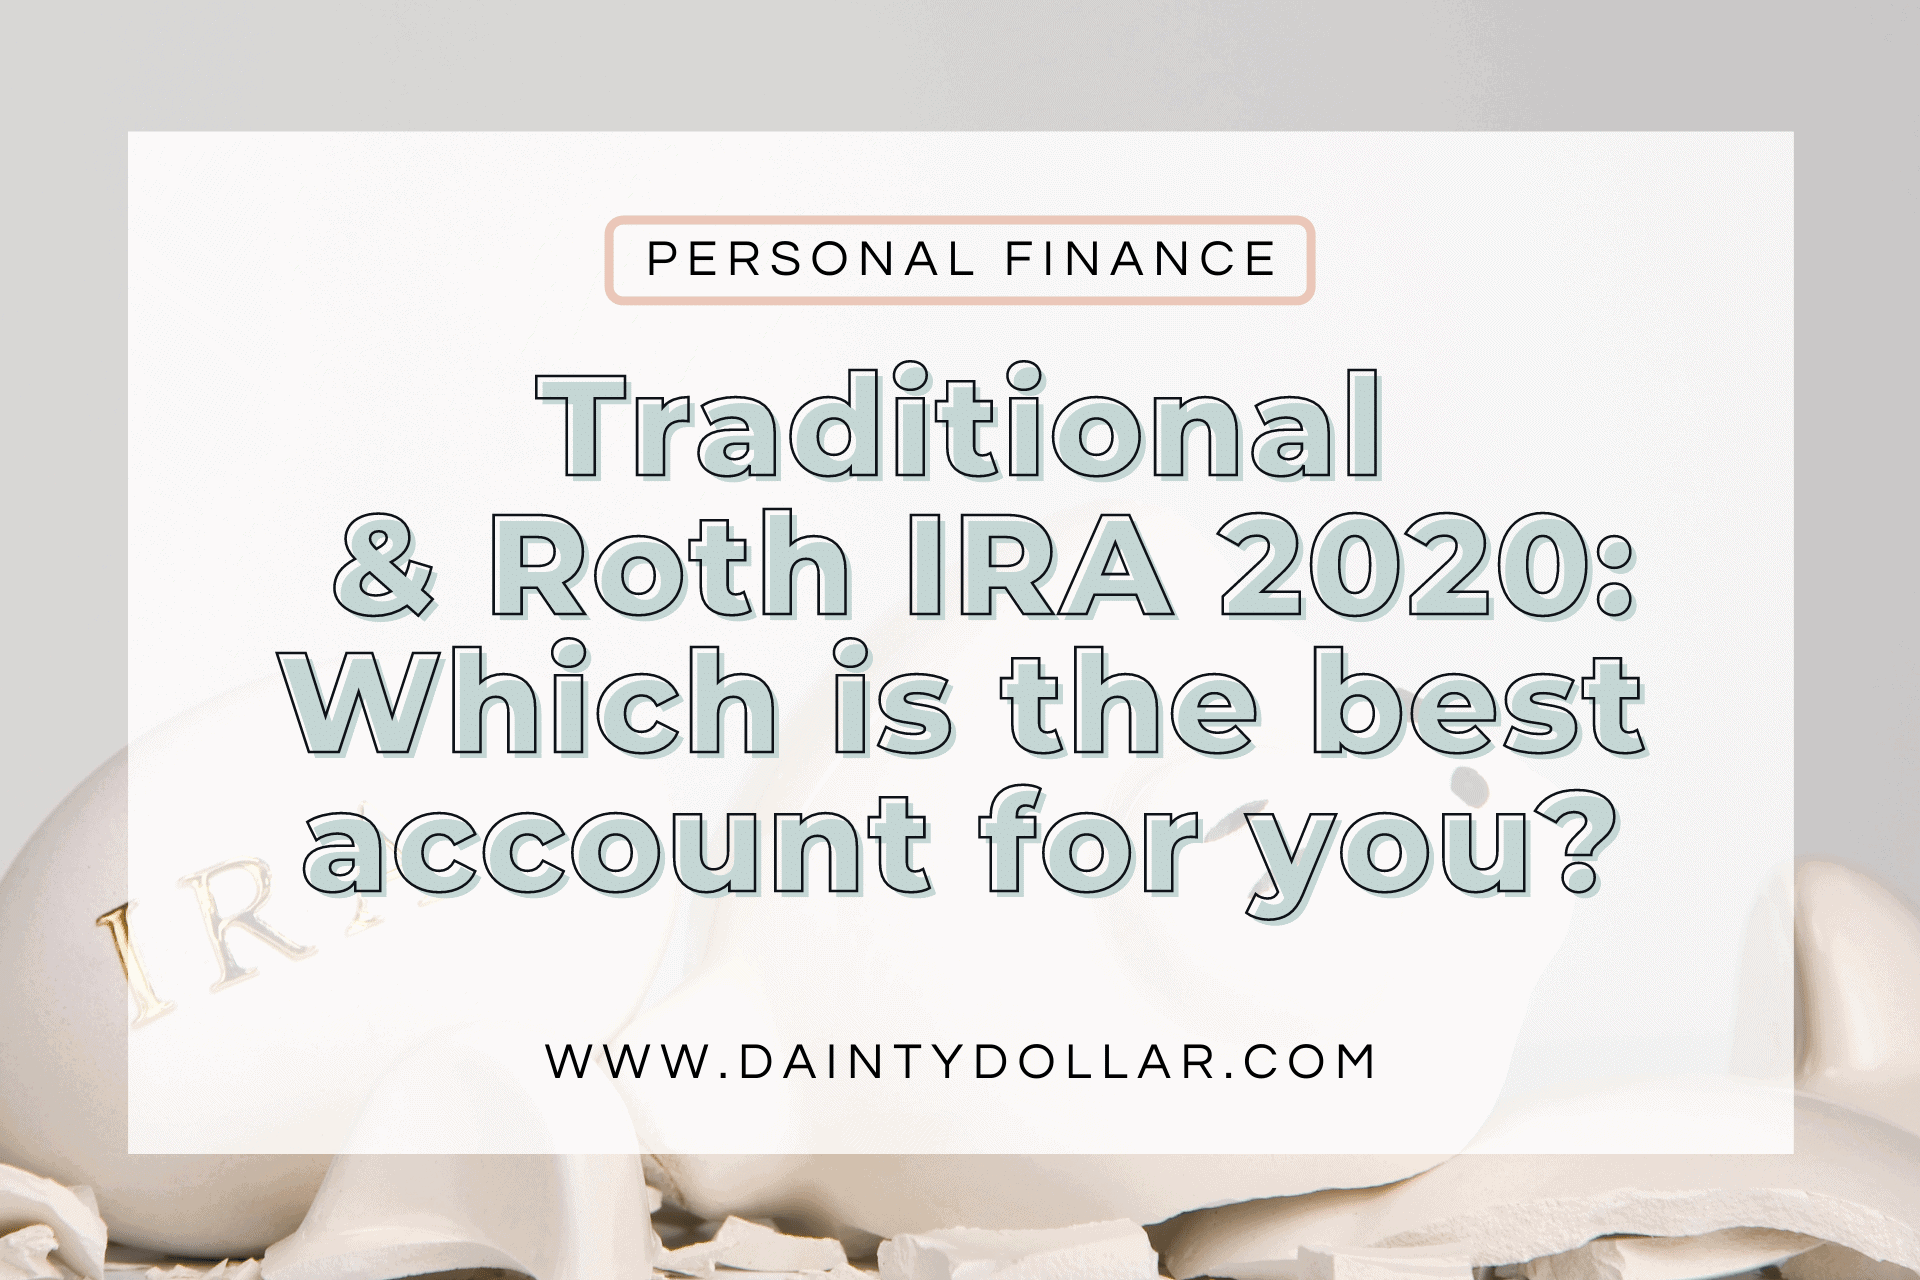 Traditional & Roth IRA 2020 Which is the best account for you - Dainty Dollar